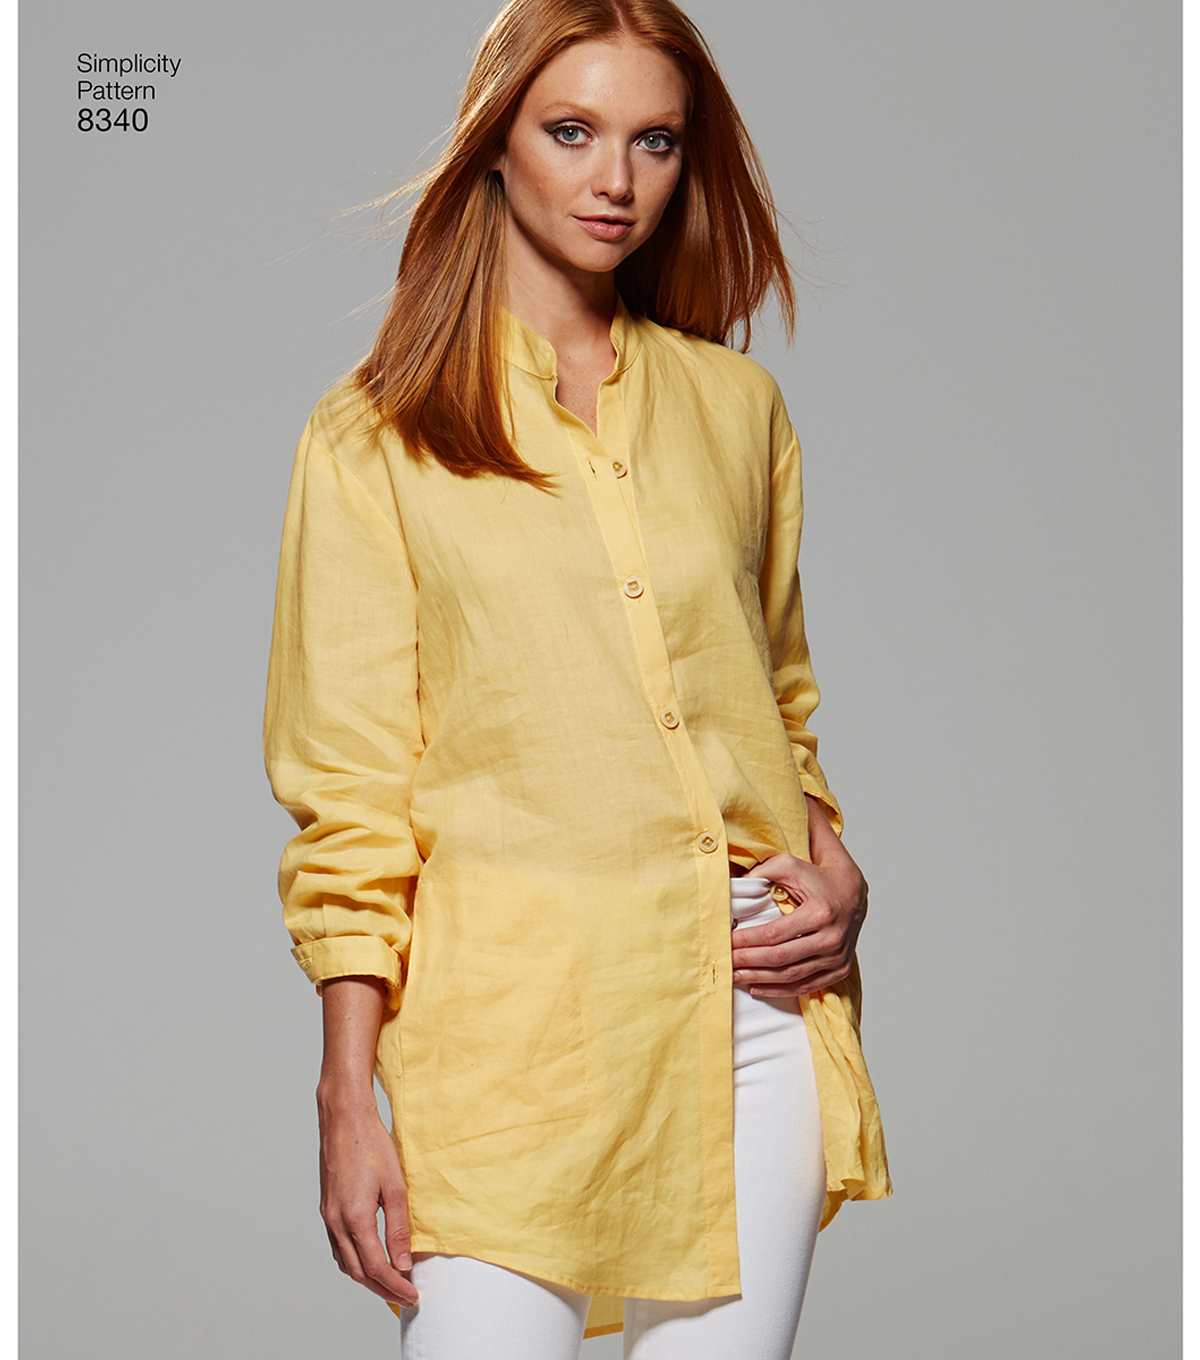 Simplicity Pattern 8340 Misses\u0027 Project Runway Shirts-Size P5 (12-20)